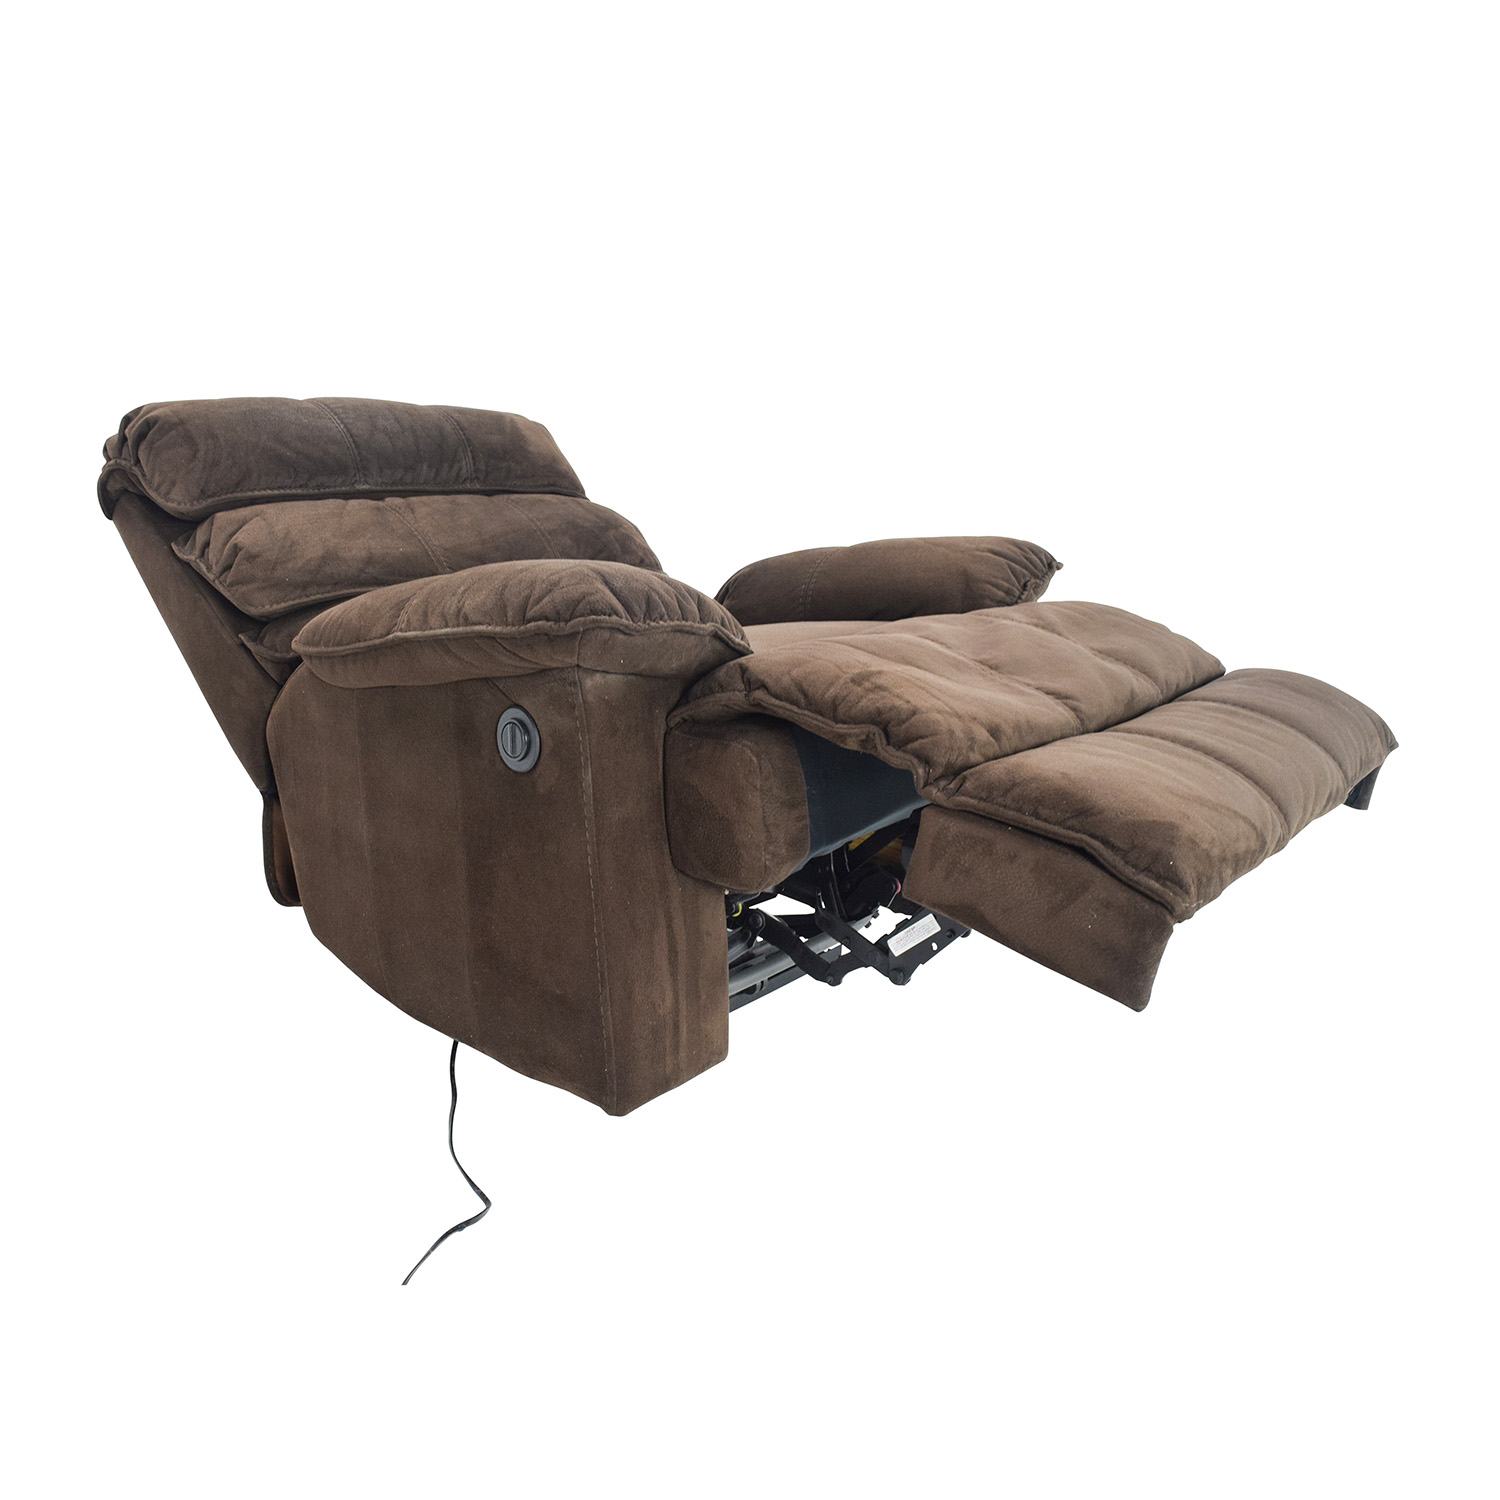 69 off macy 39 s macy 39 s recliner chair chairs for Chair recliner